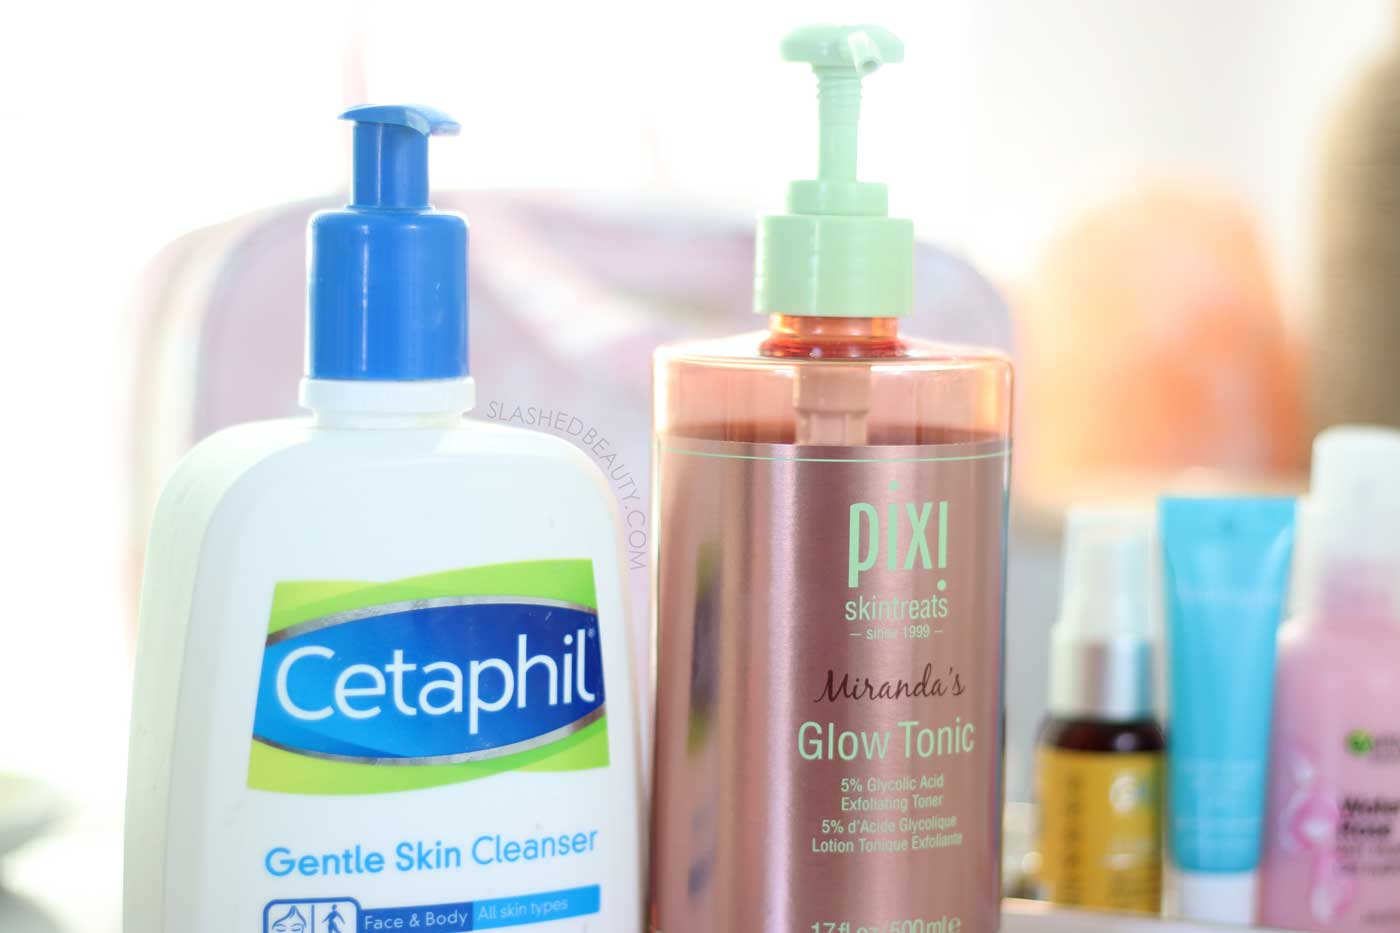 Cetaphil Gentle Skin Cleanser & Pixi Glow Tonic | Best Drugstore Skin Care for Acne Prone Skin | Slashed Beauty